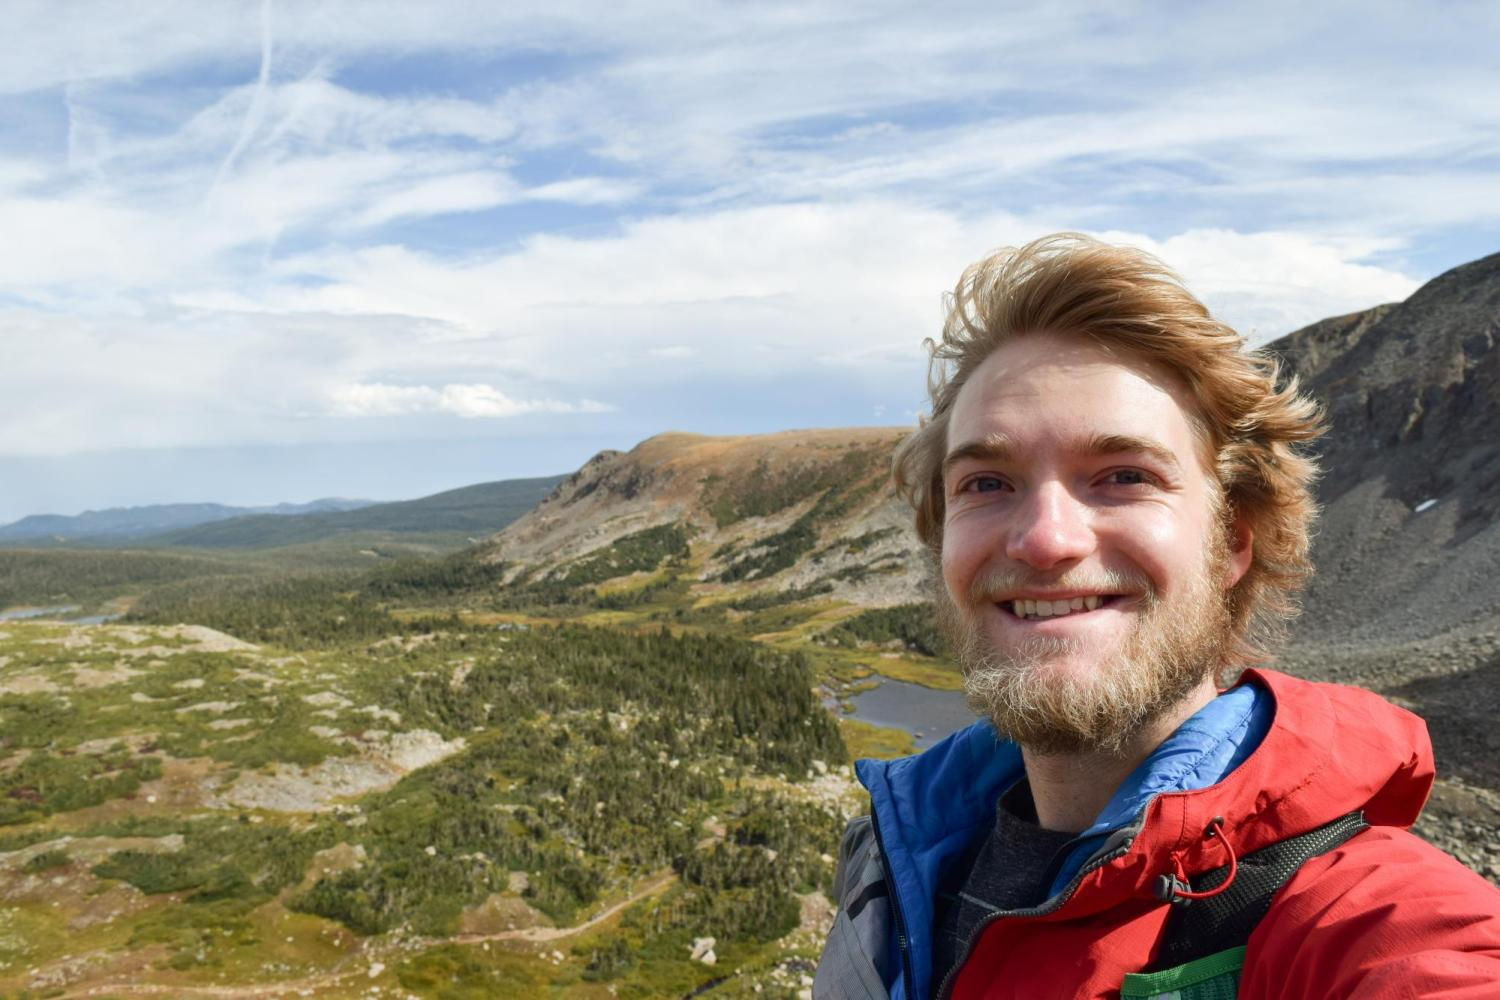 Nate Bennett in a jacket in front of a wide expanse of mountains and sky.